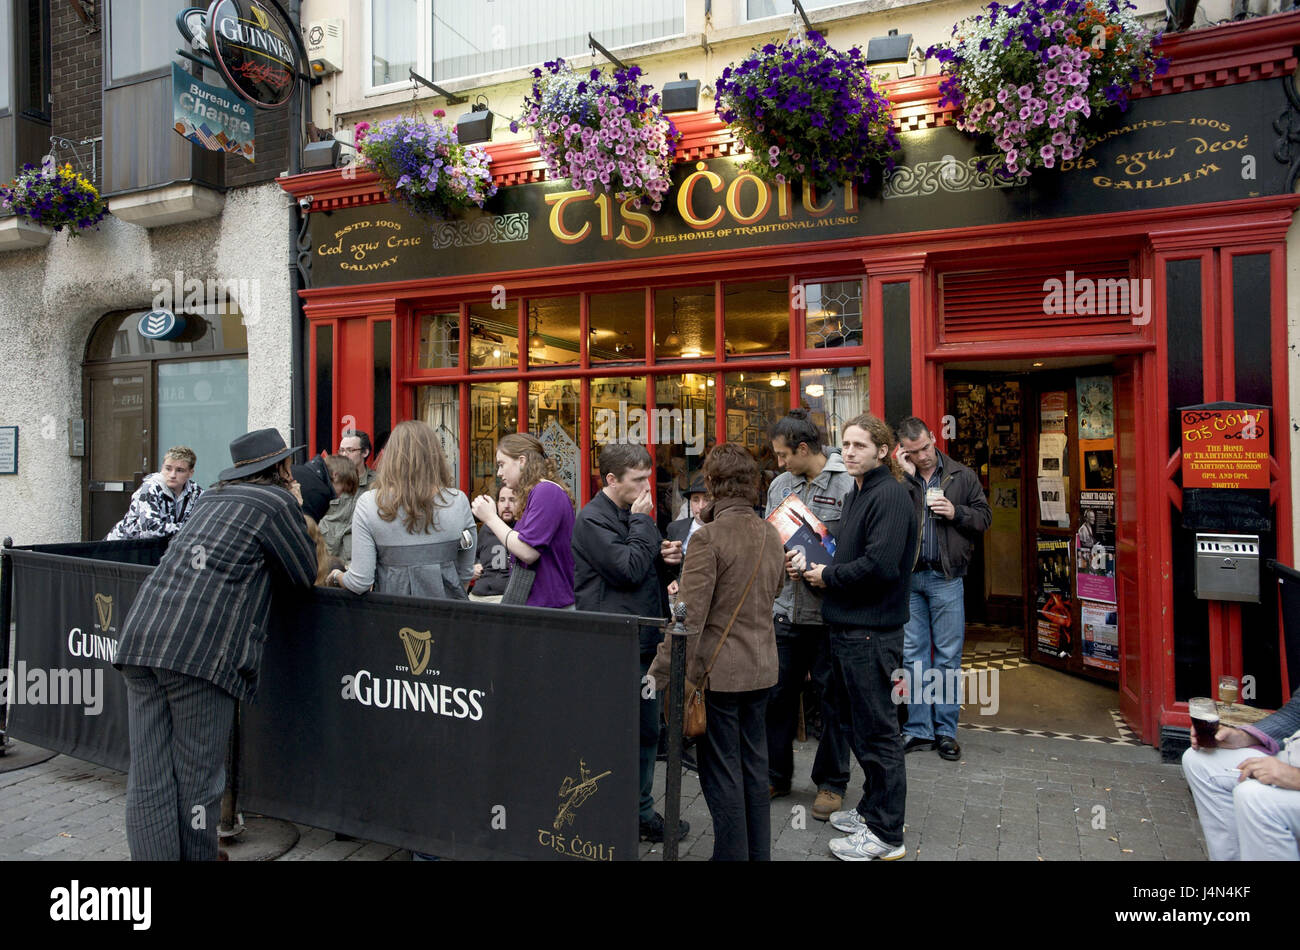 Ireland Galway Tig Coili Pub High Resolution Stock Photography And Images Alamy